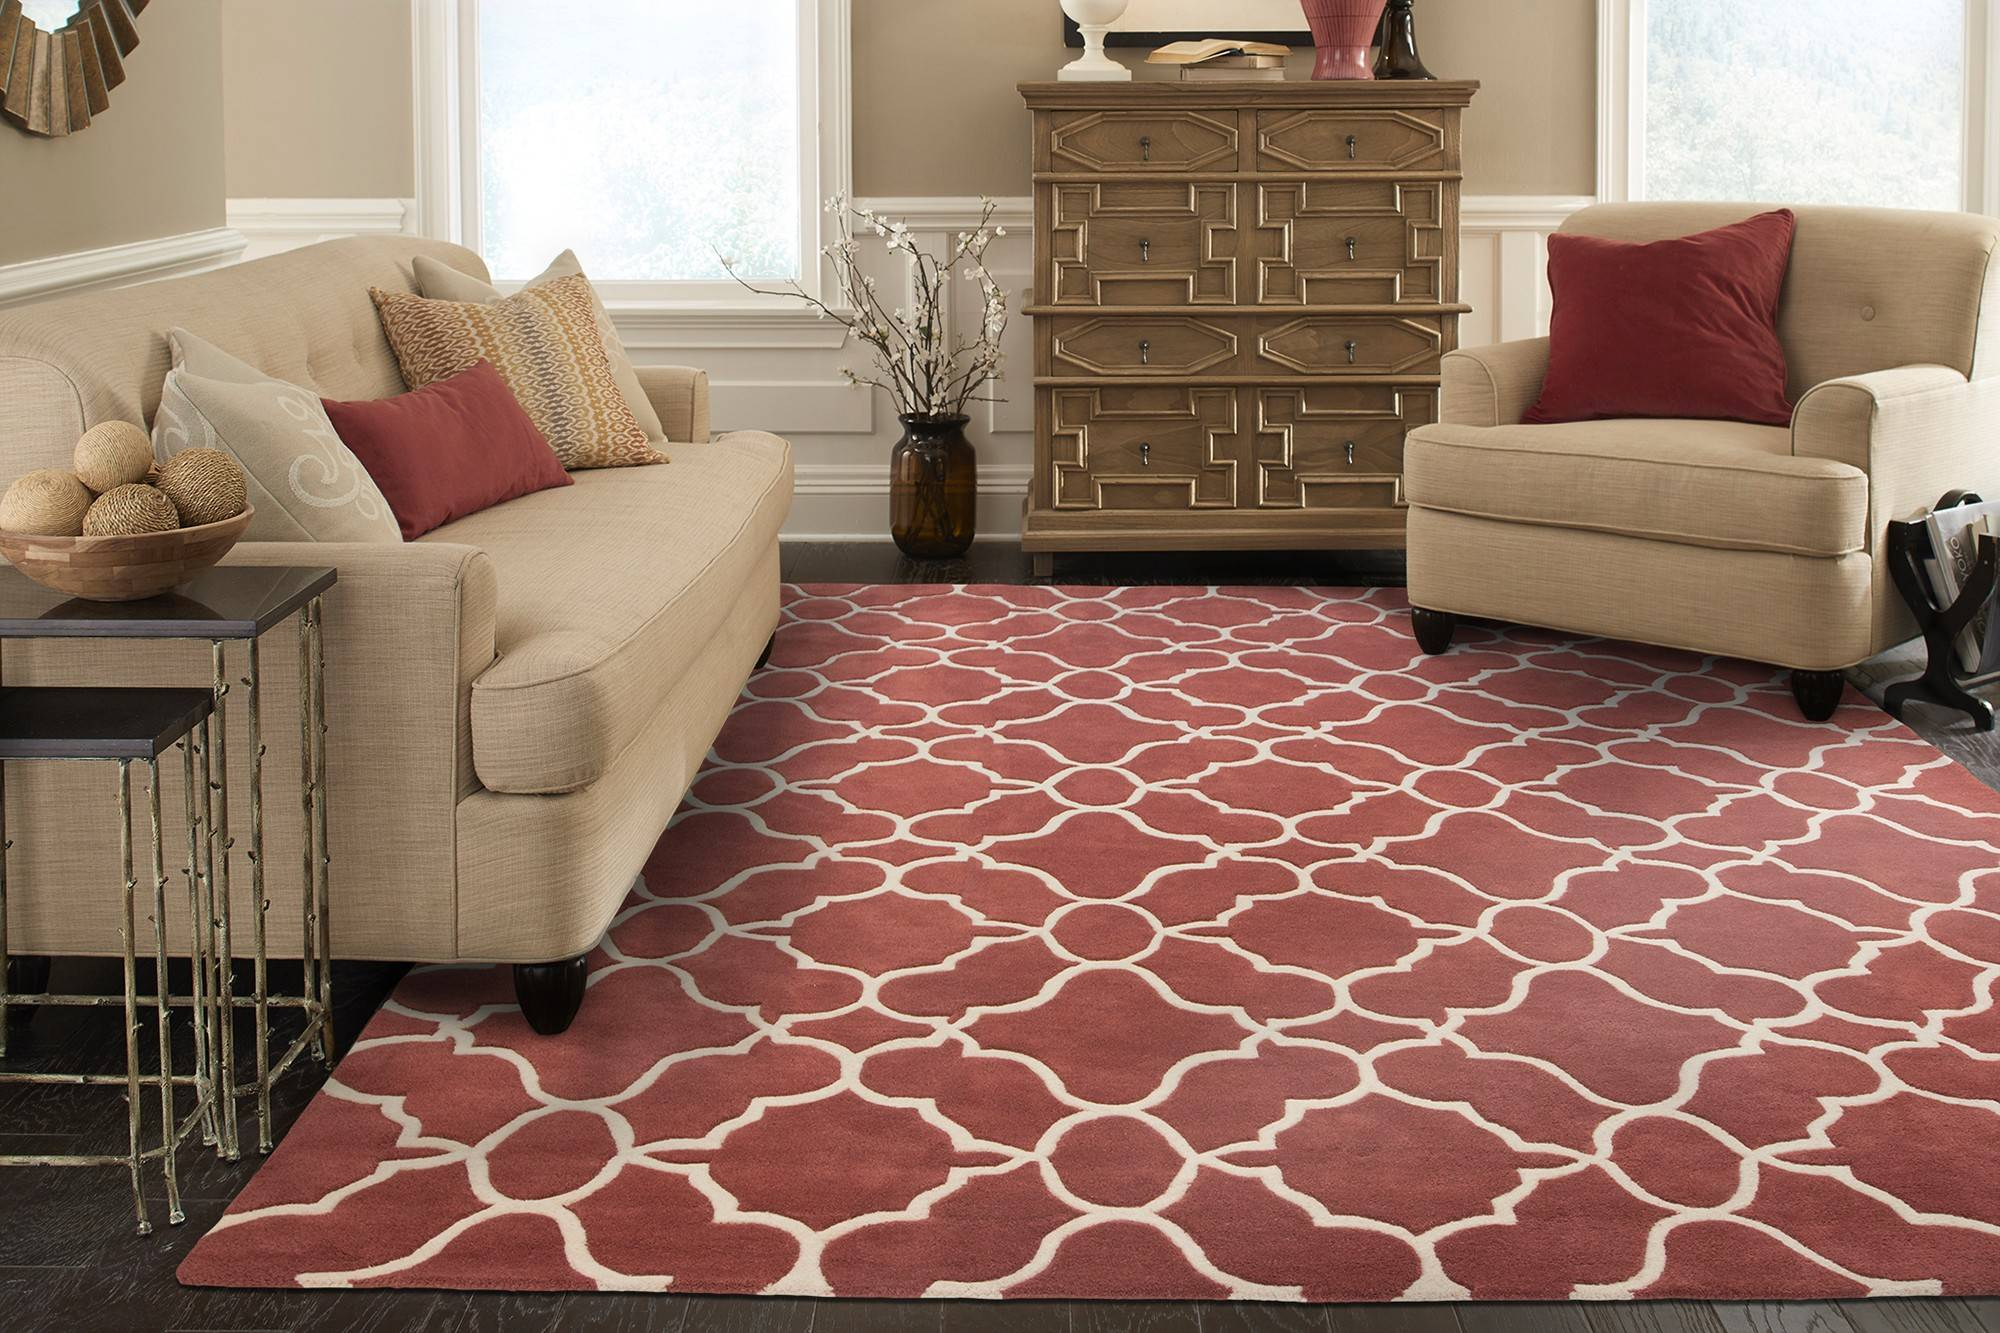 Marsala Pantone Rug Color of the Year 2015 Neutral Living Room with Marsala Accents 18-1438